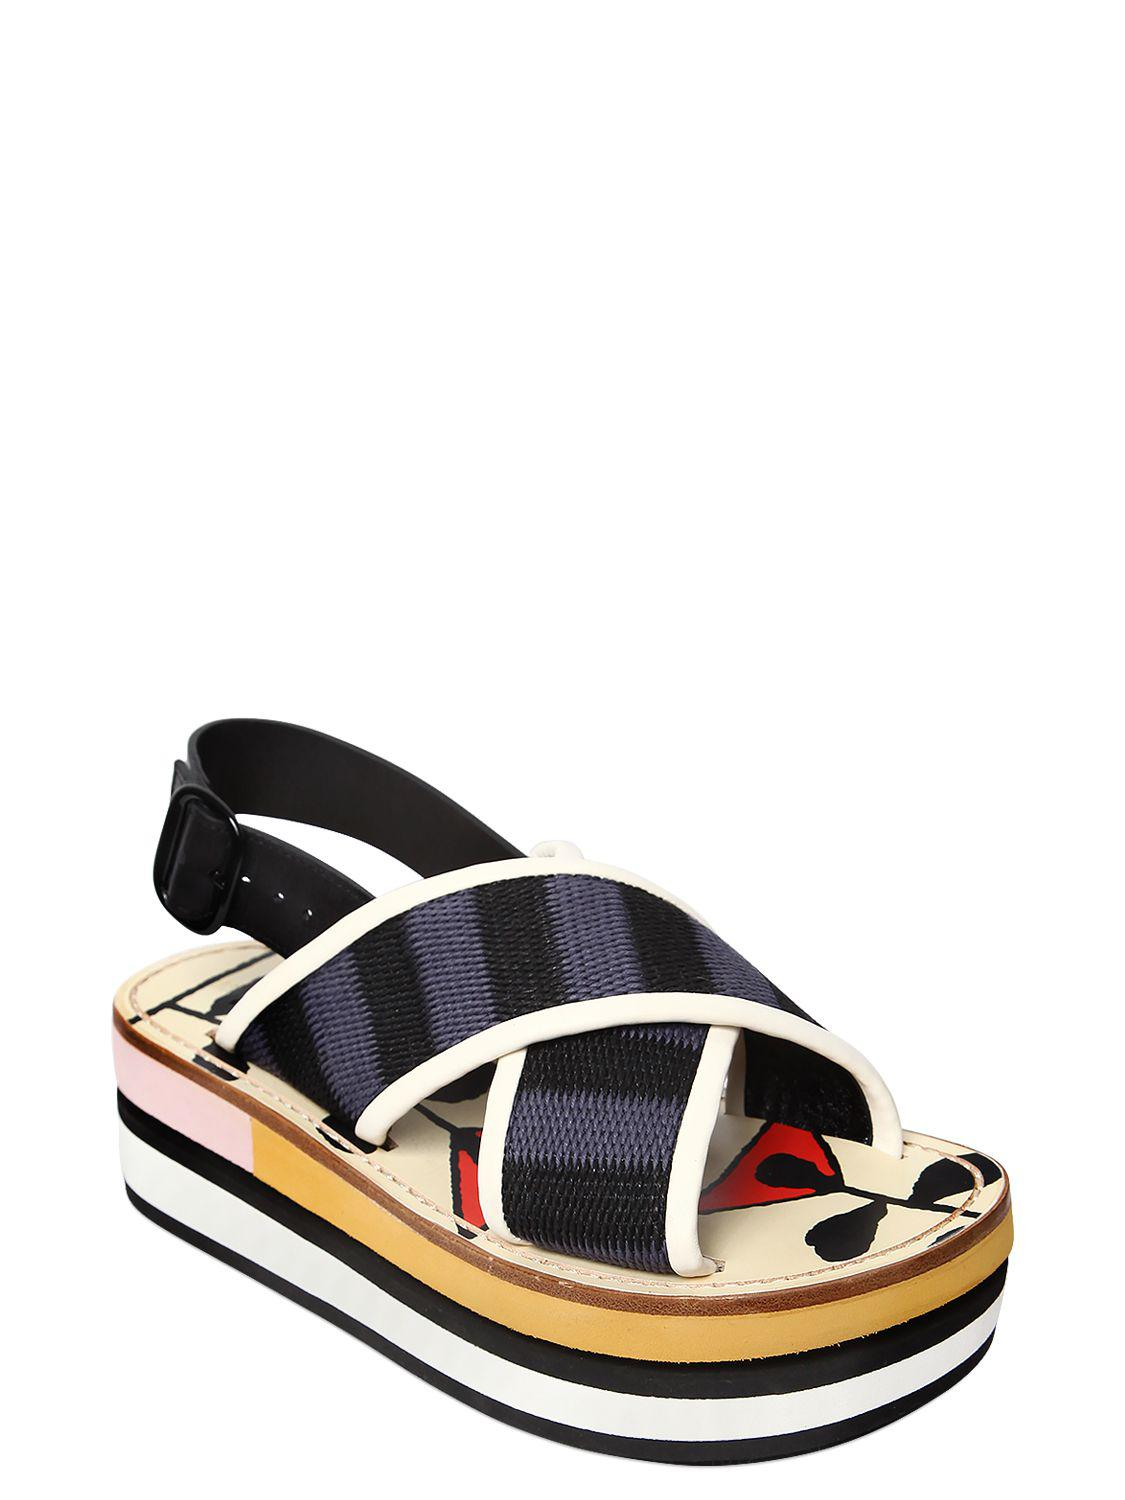 new cheap online newest for sale Marni Crossover Wedge Sandals cheap prices authentic buy cheap latest buy cheap low cost R8eK8Yz5z